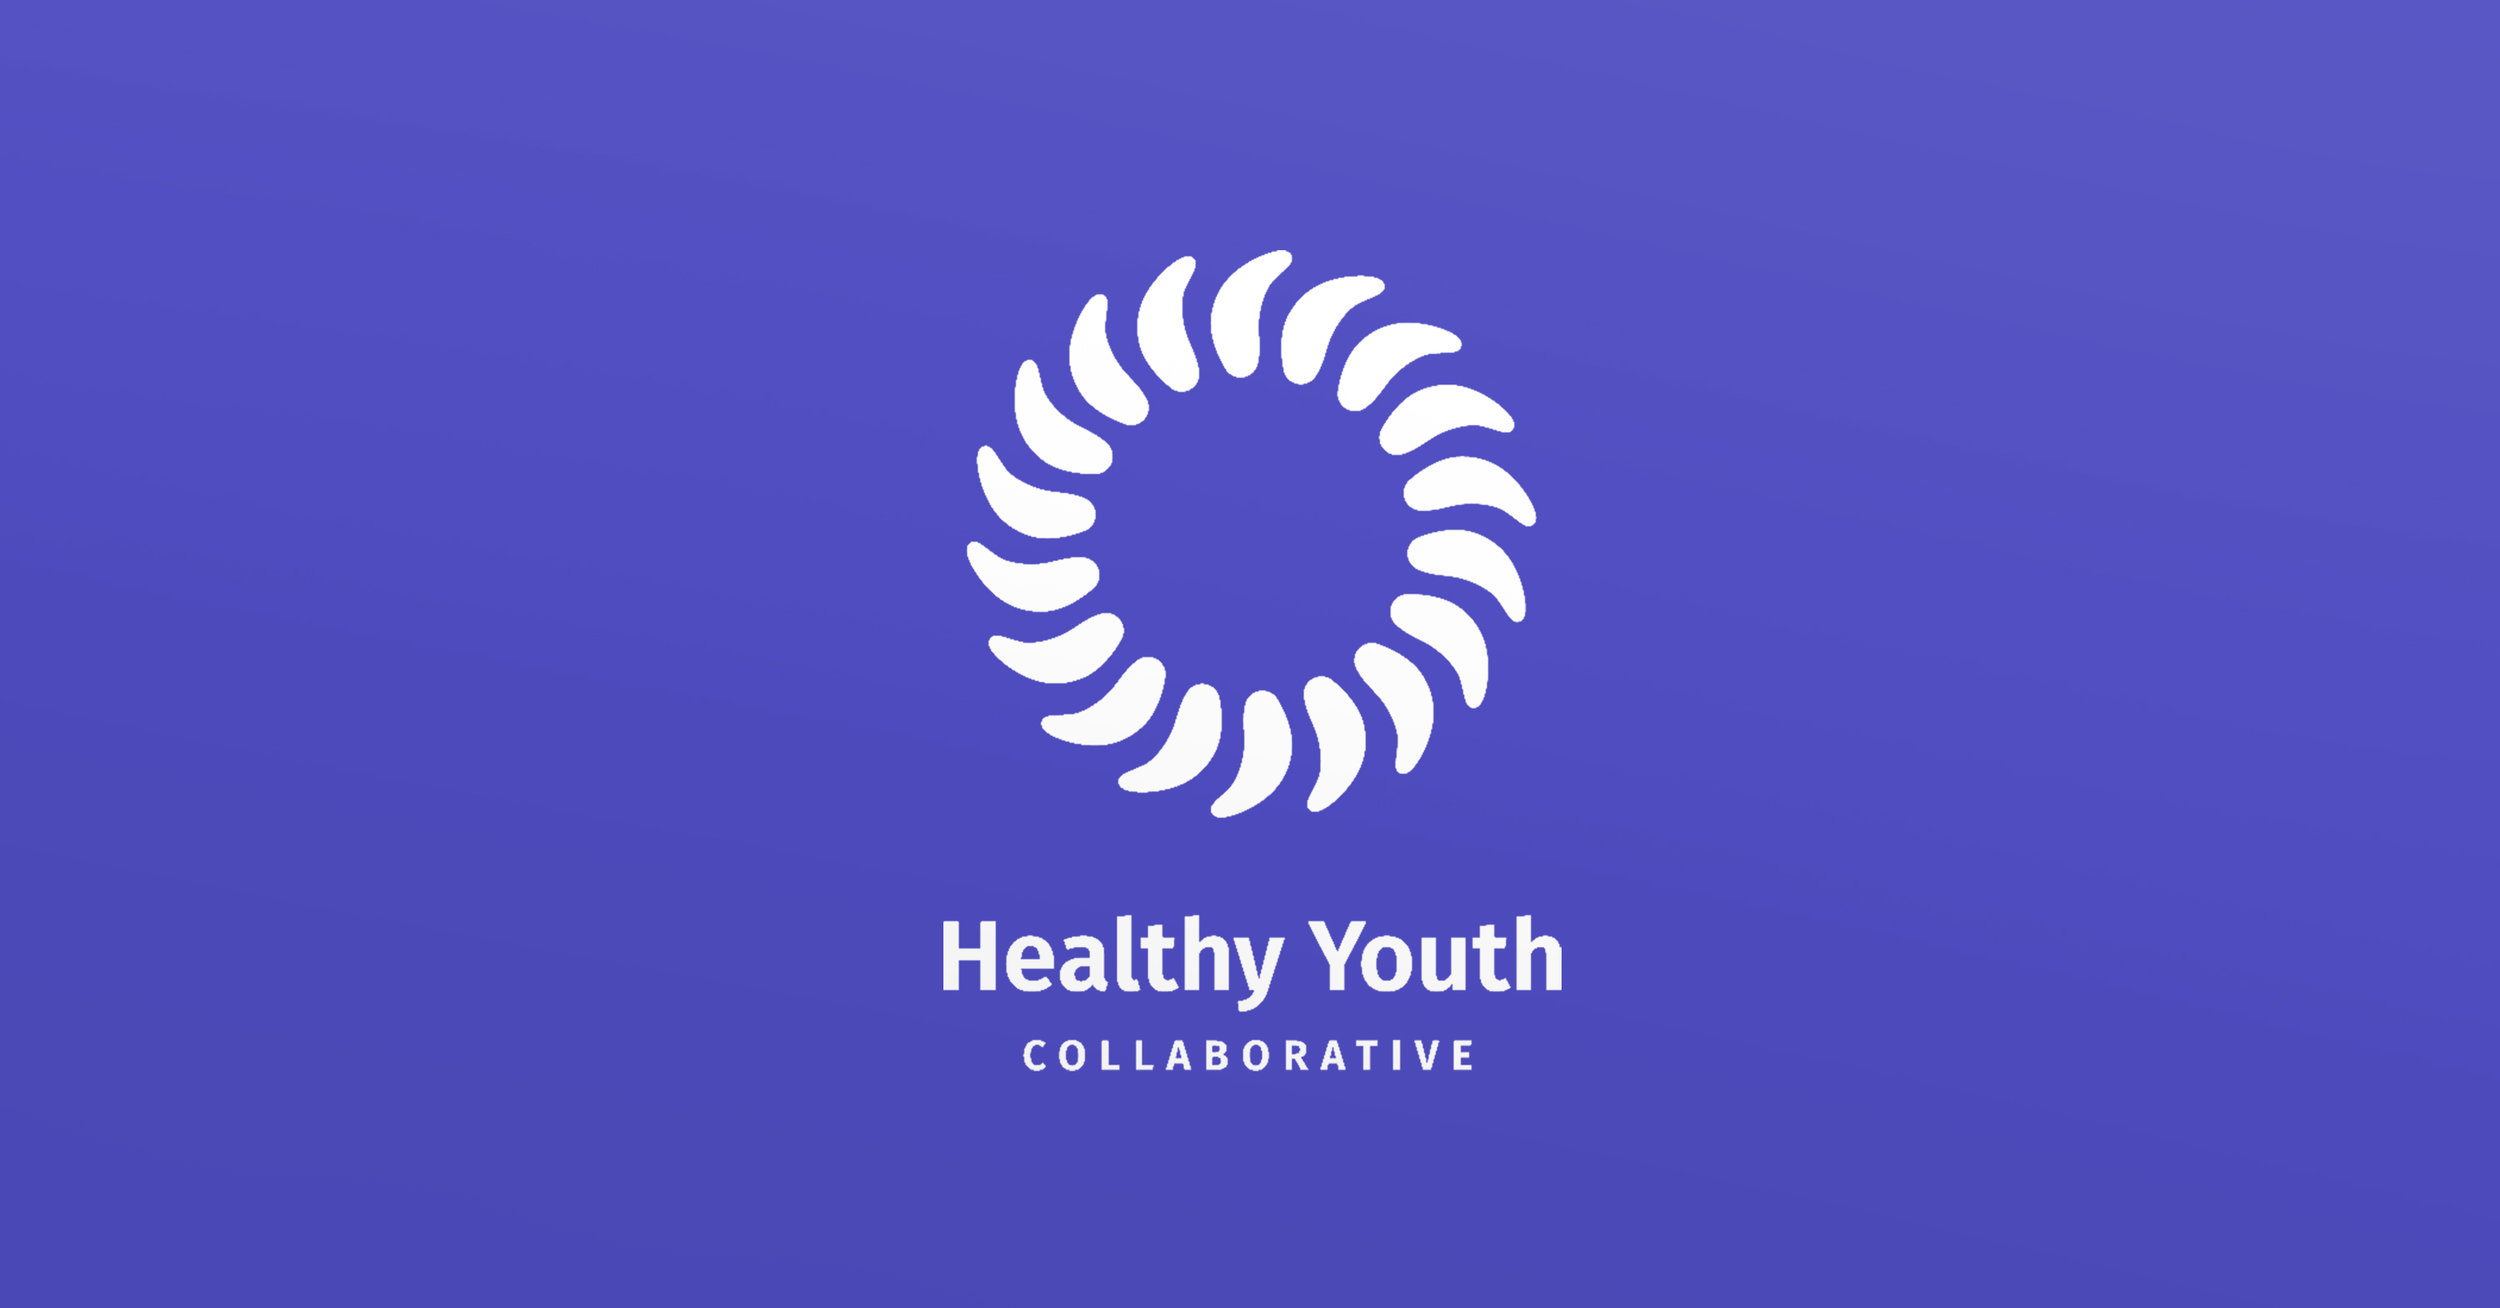 WBCG_HealthyYouth_Logo2.jpg